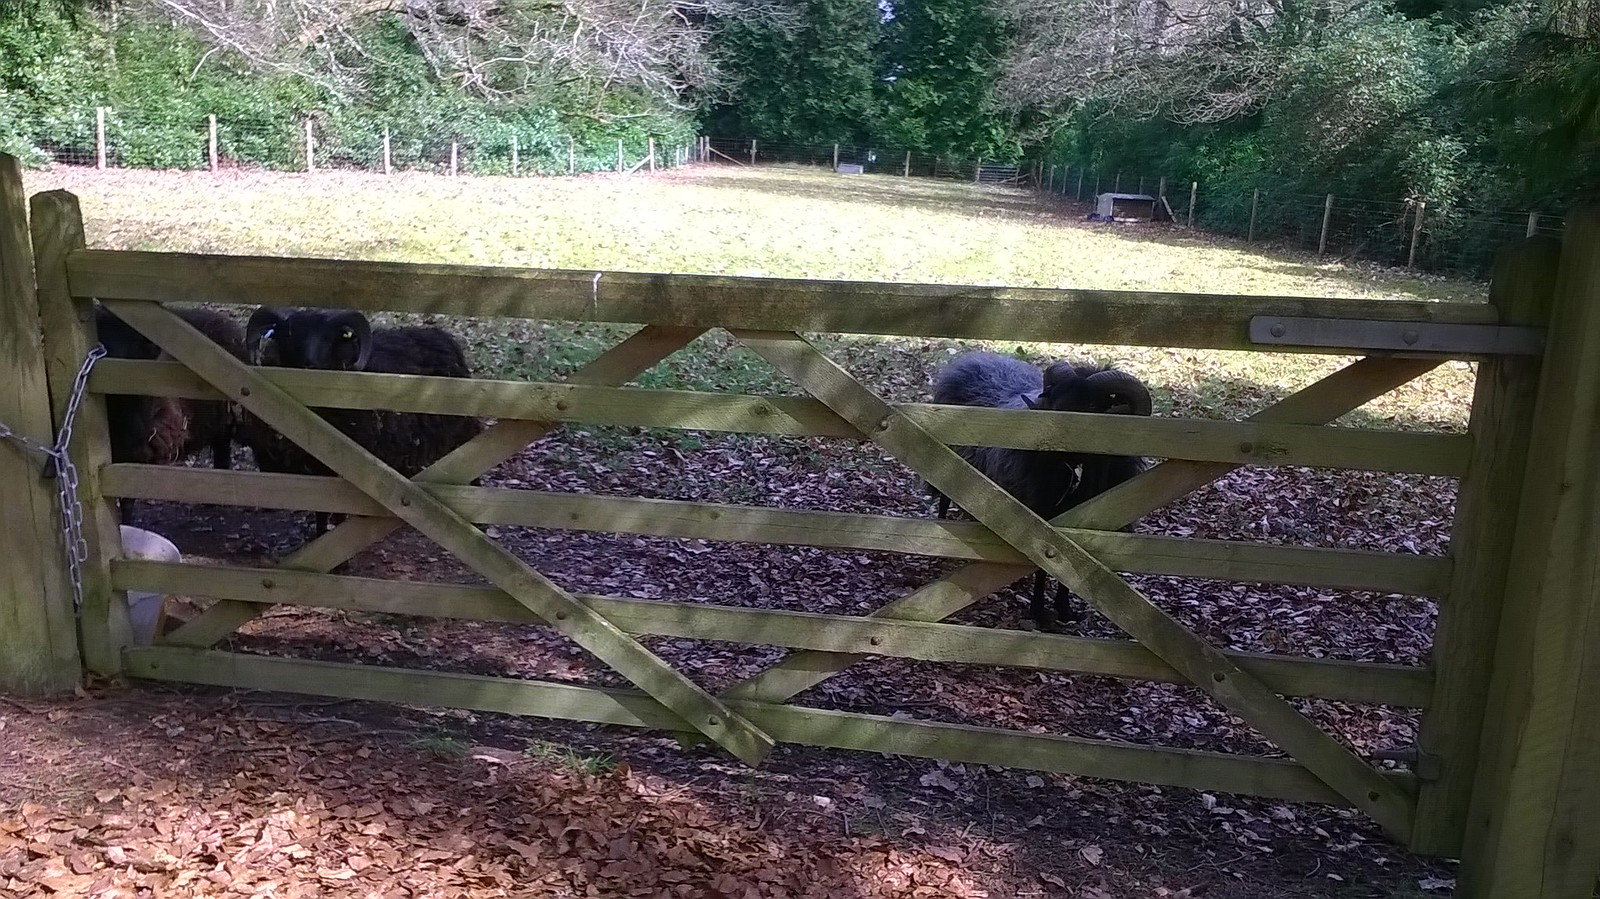 Peekaboo! Black sheep, Surrey